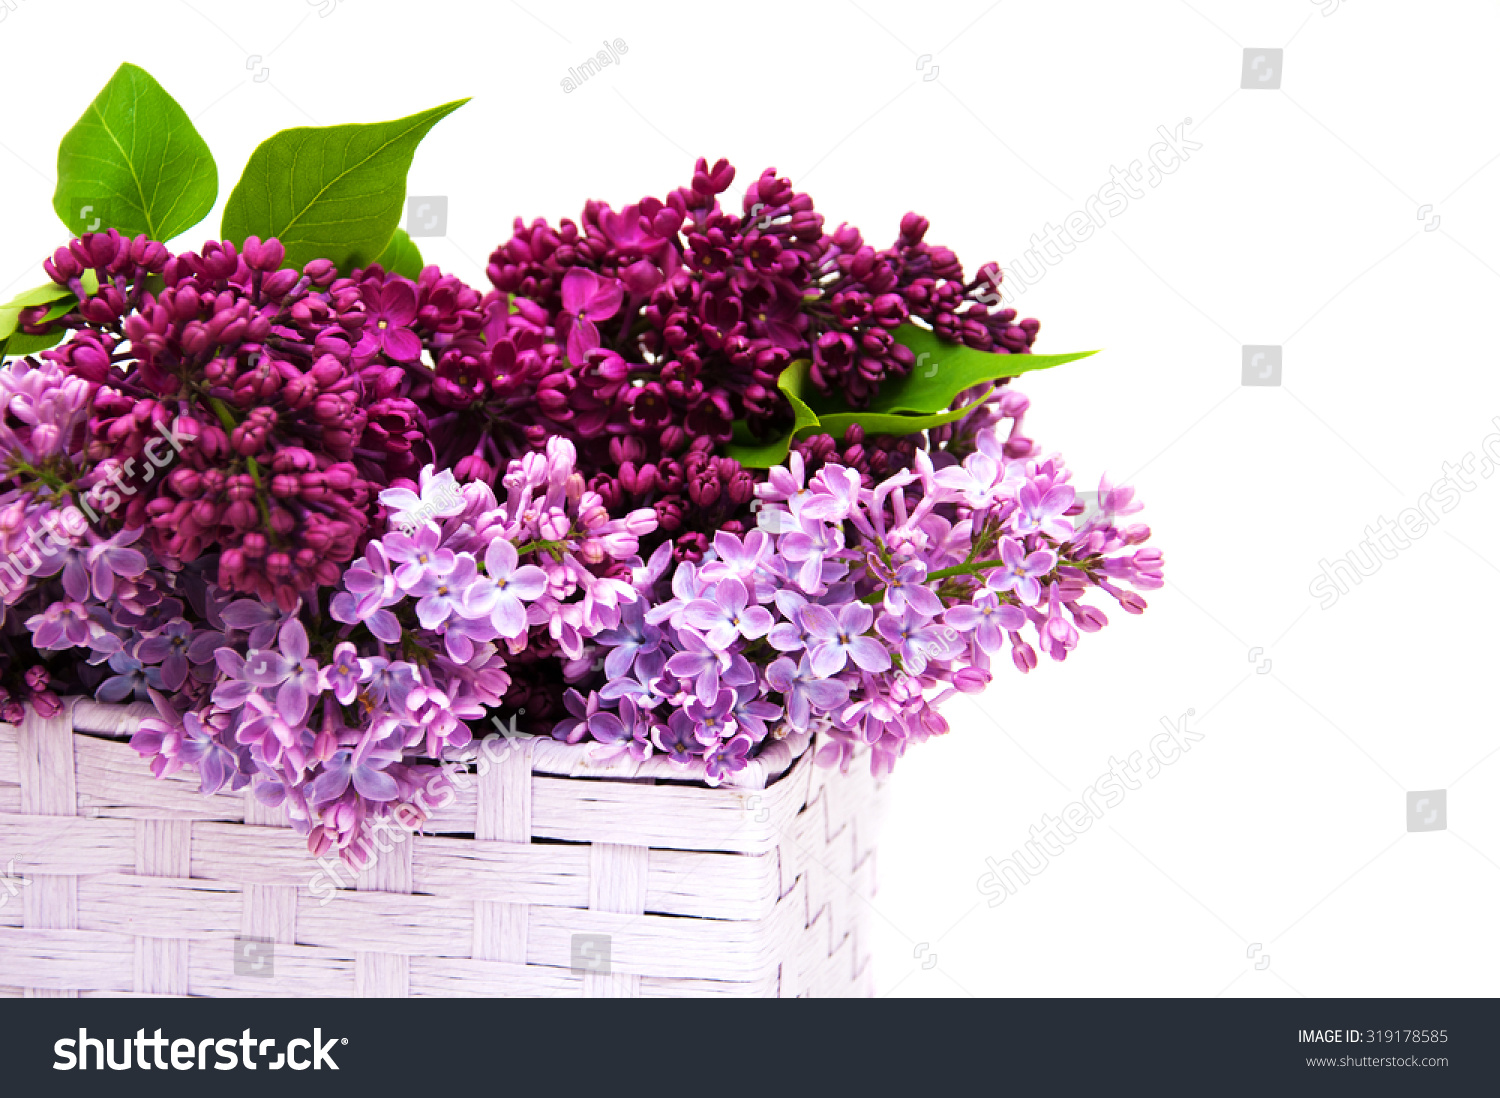 Basket With Lilac Flowers On A White Background Ez Canvas